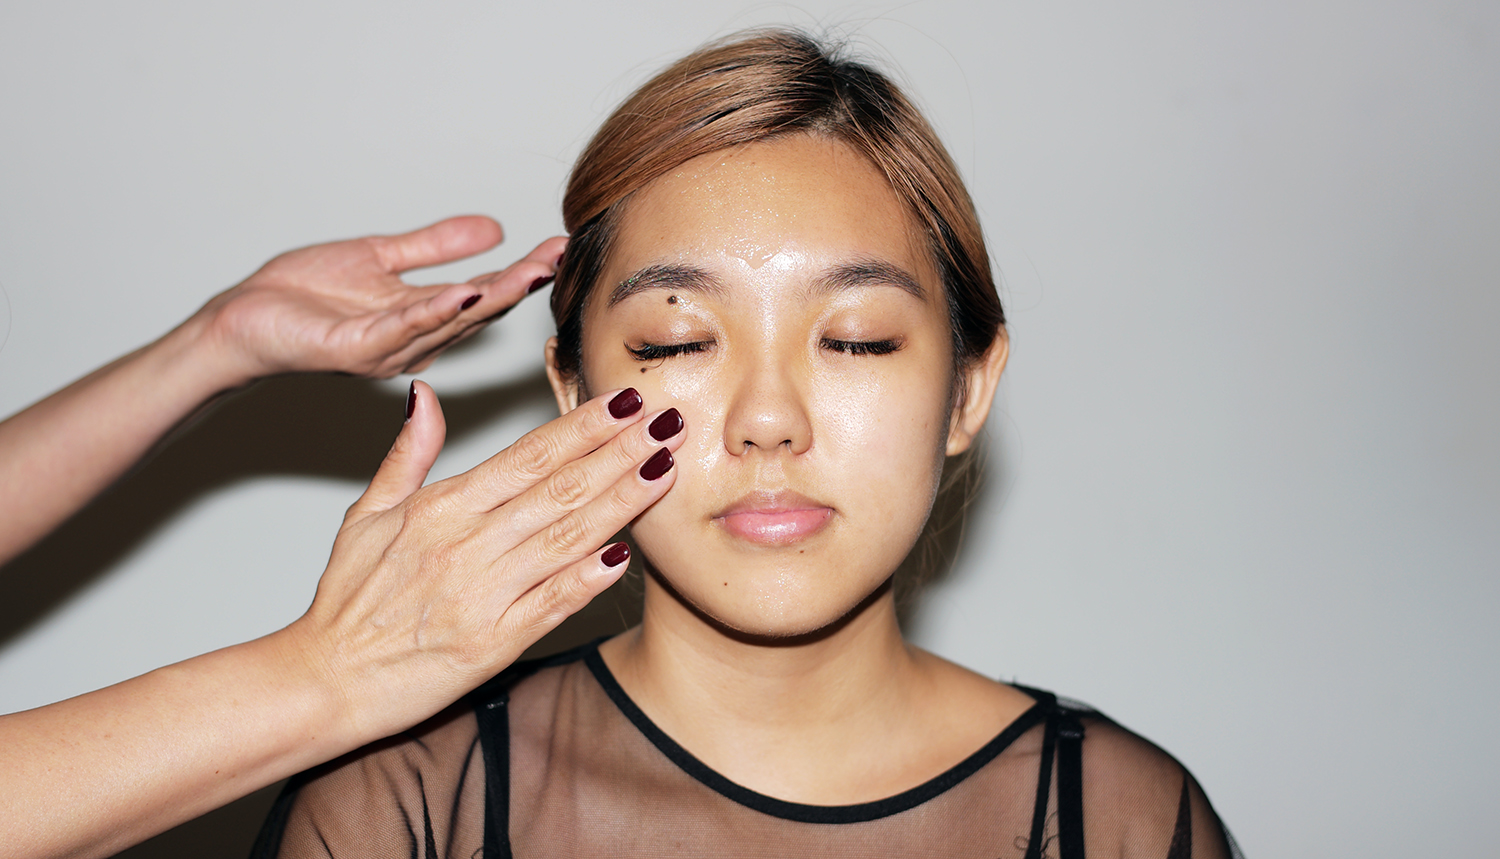 1. Start by applying Génifique evenly all over the face